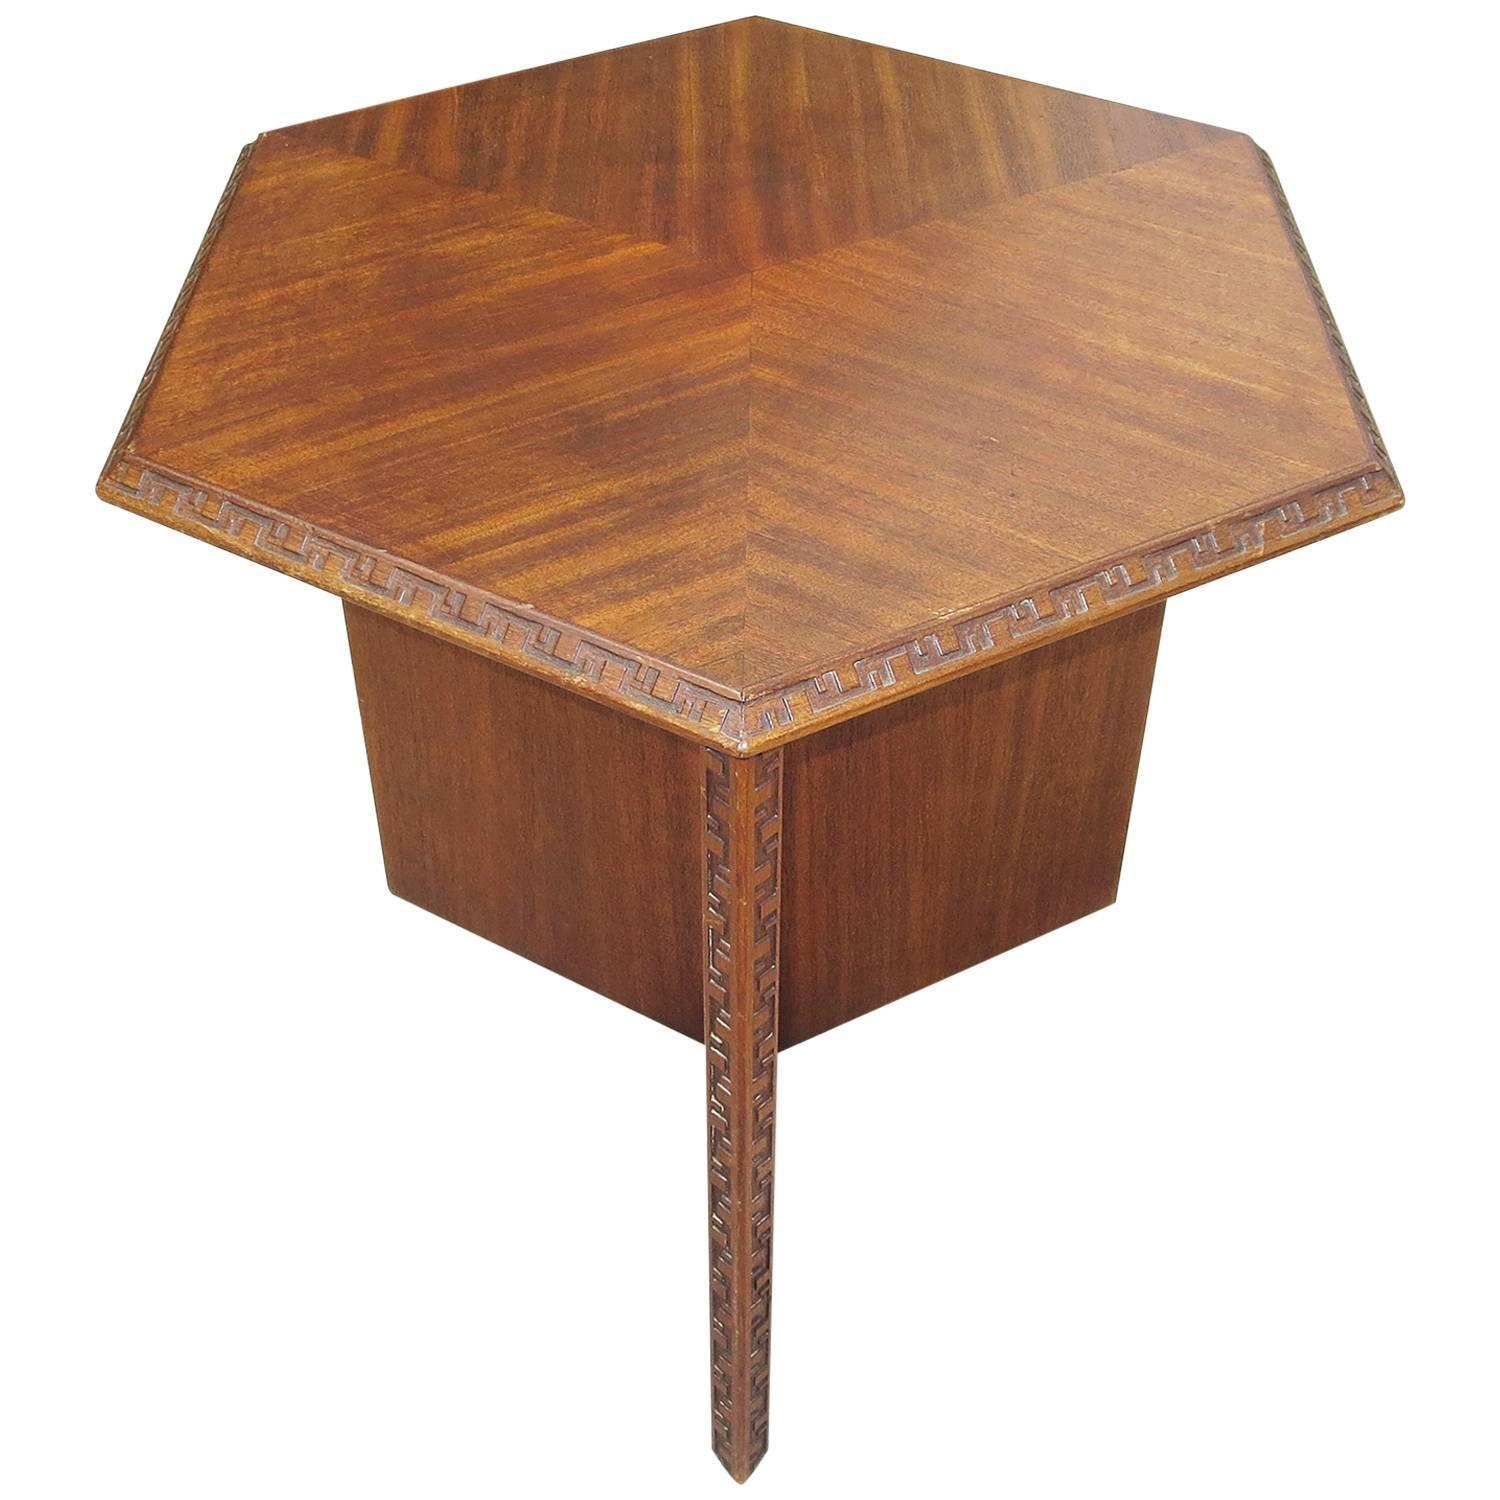 Frank Lloyd Wright Side Table for Heritage Henredon 1955 at 1stdibs